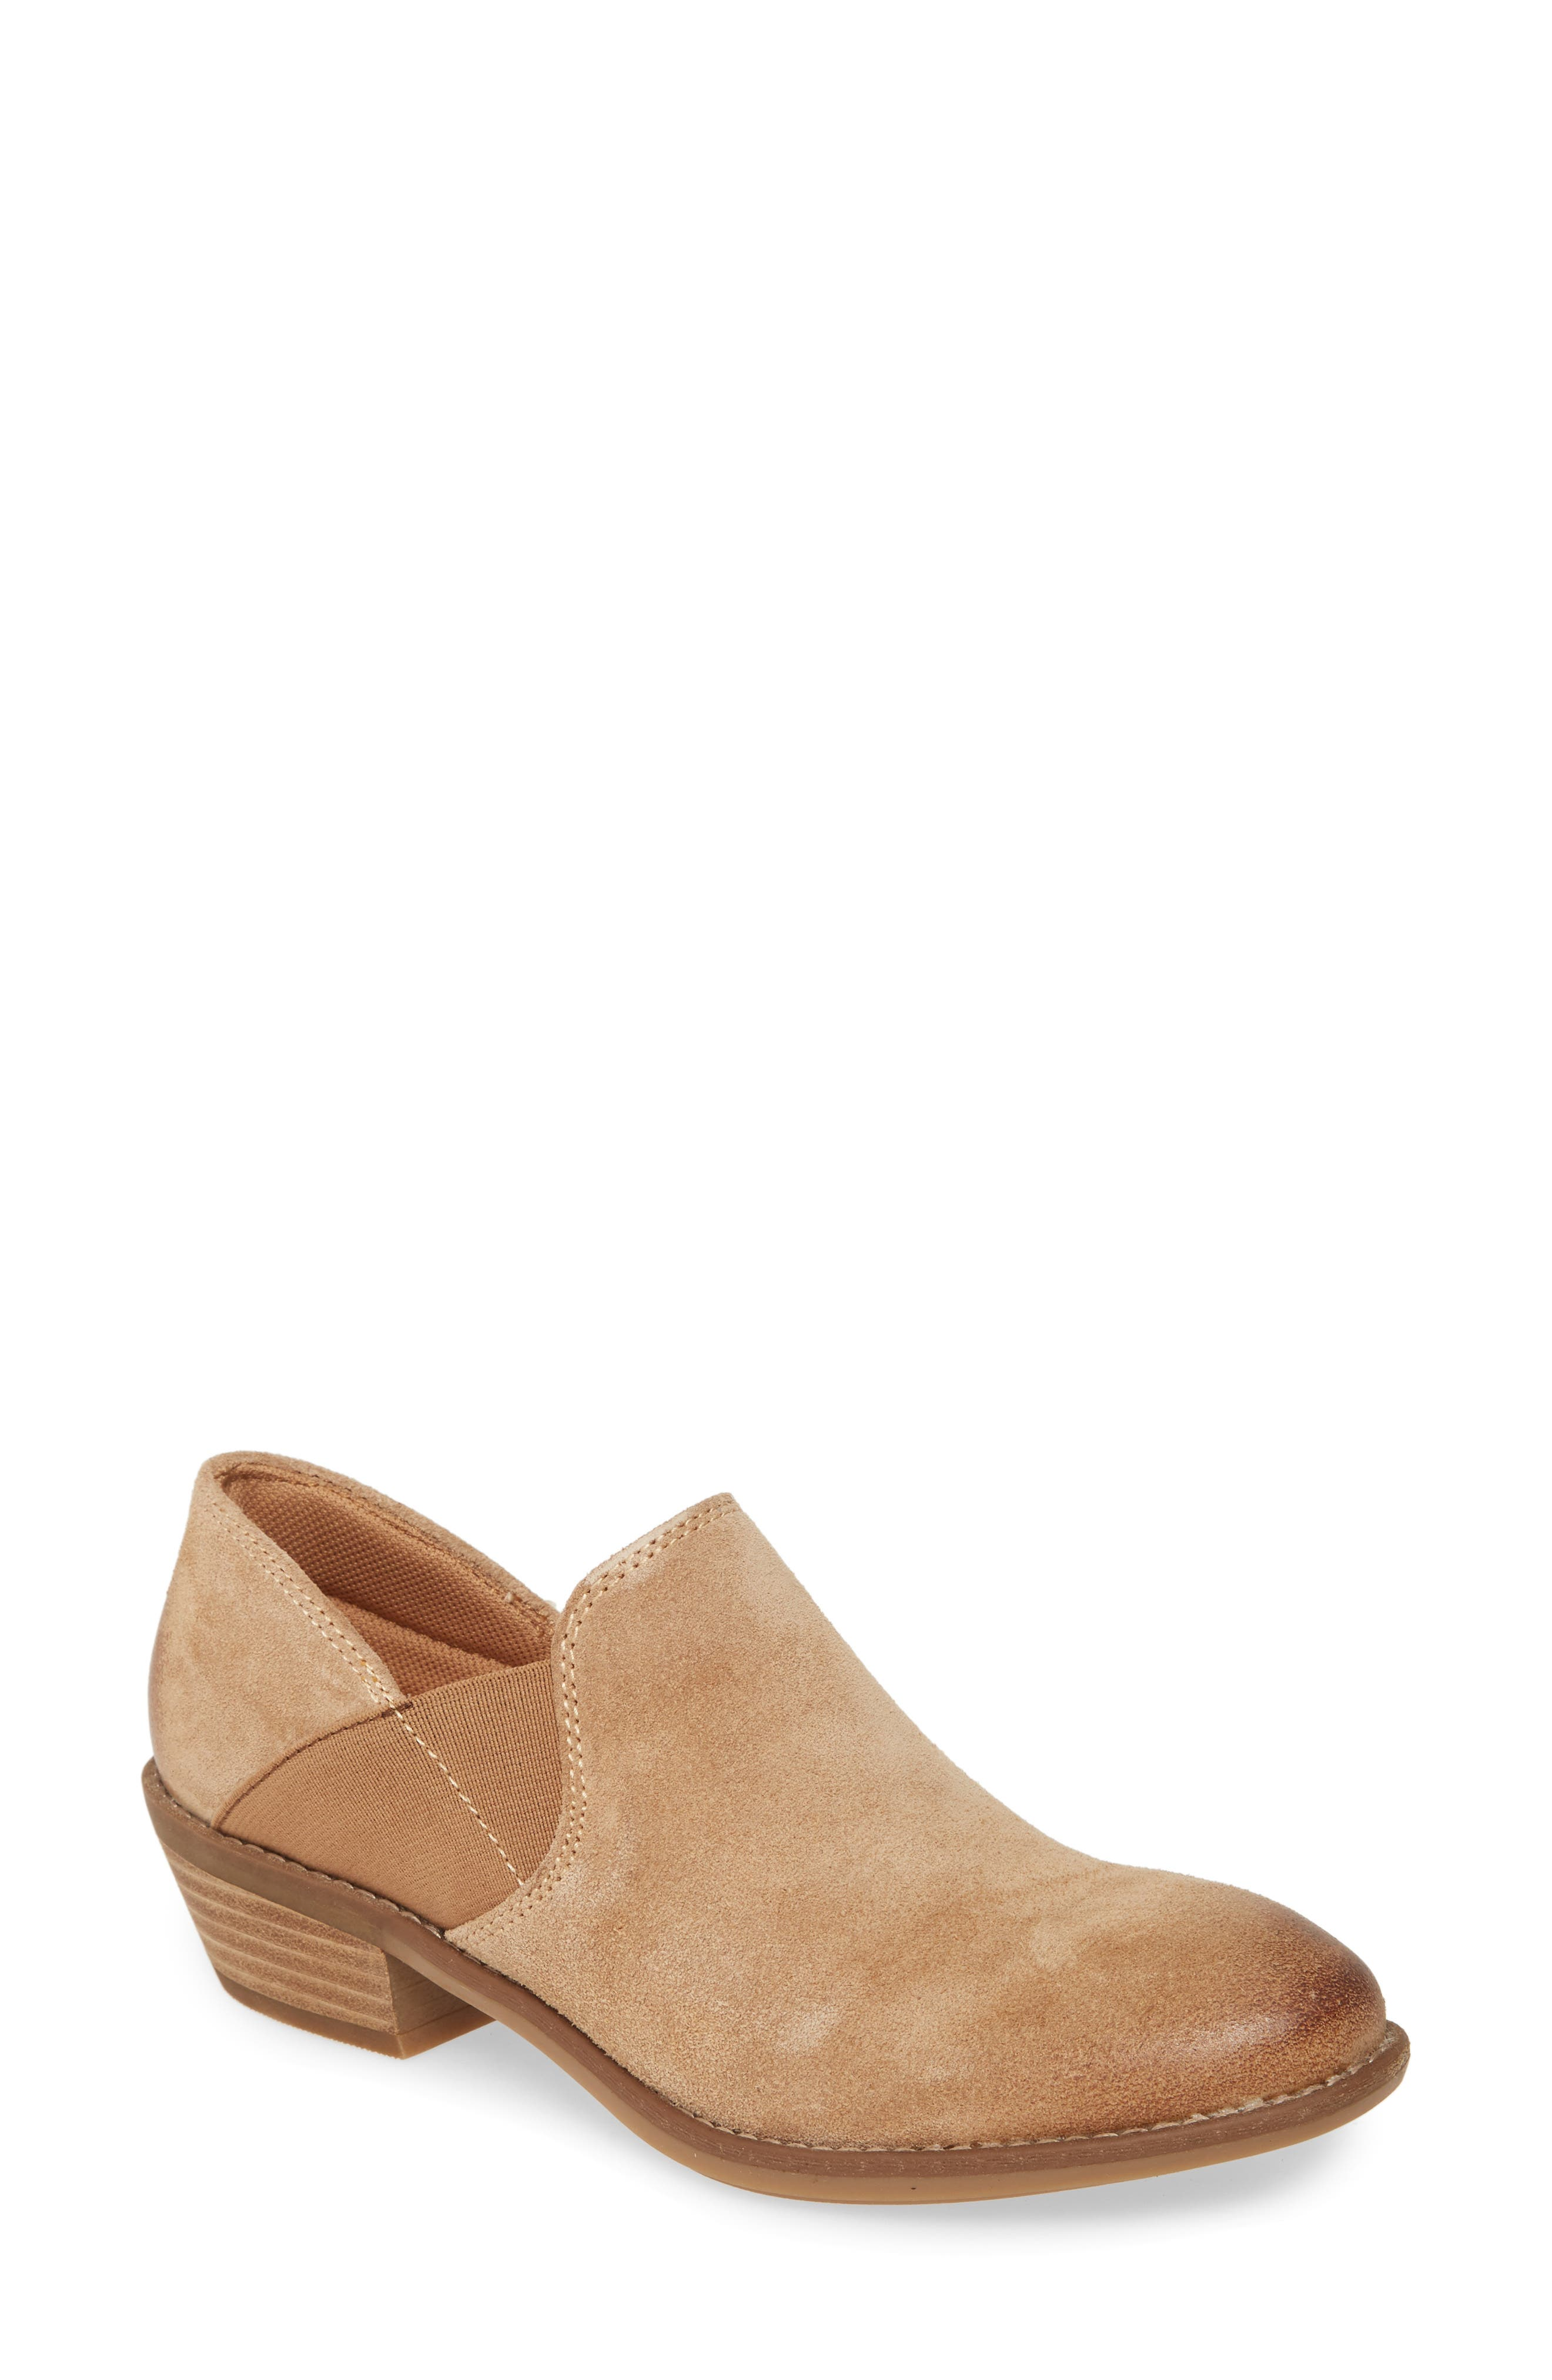 Clean contemporary style merges with everyday comfort in this block-heel bootie grounded with a cushioned memory foam footbed. Style Name: Comfortiva Valance Bootie (Women). Style Number: 5880707. Available in stores.